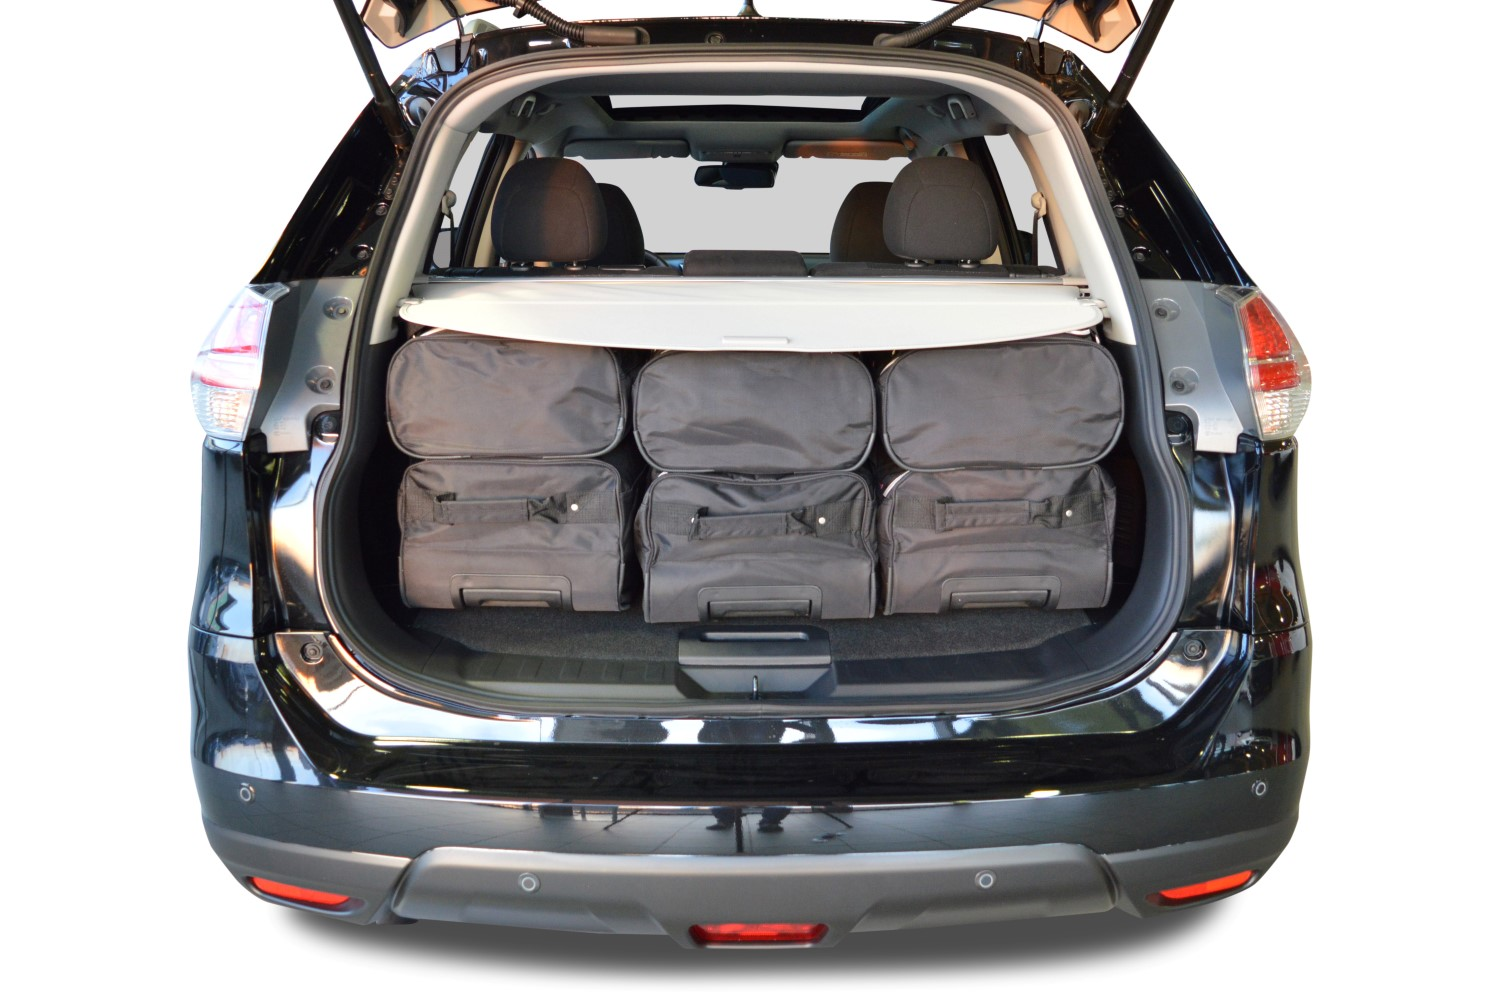 x trail iii t32 2013 nissan x trail t32 2013 present car bags travel bags. Black Bedroom Furniture Sets. Home Design Ideas